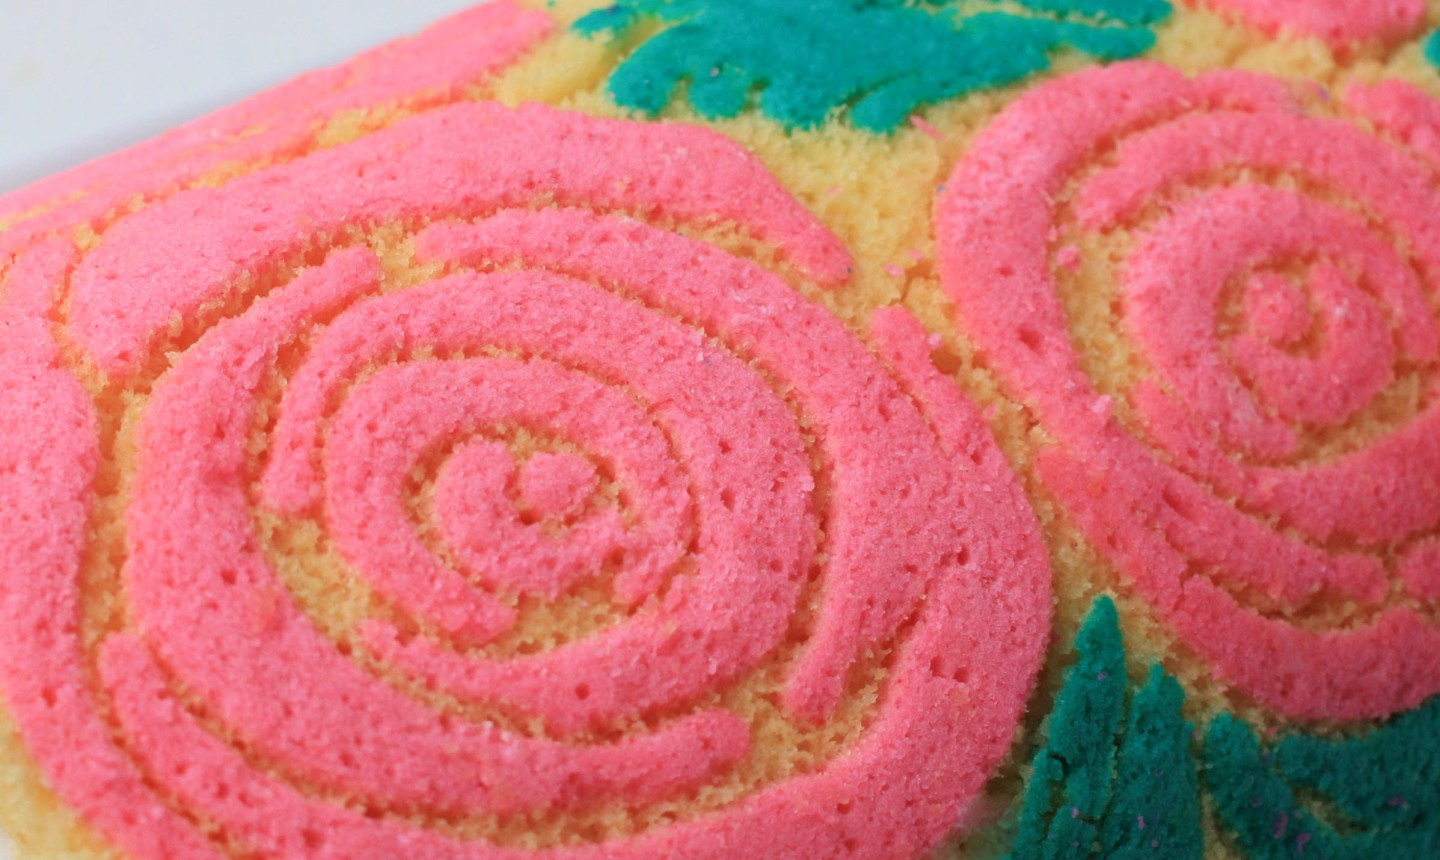 rose detail on roll cake